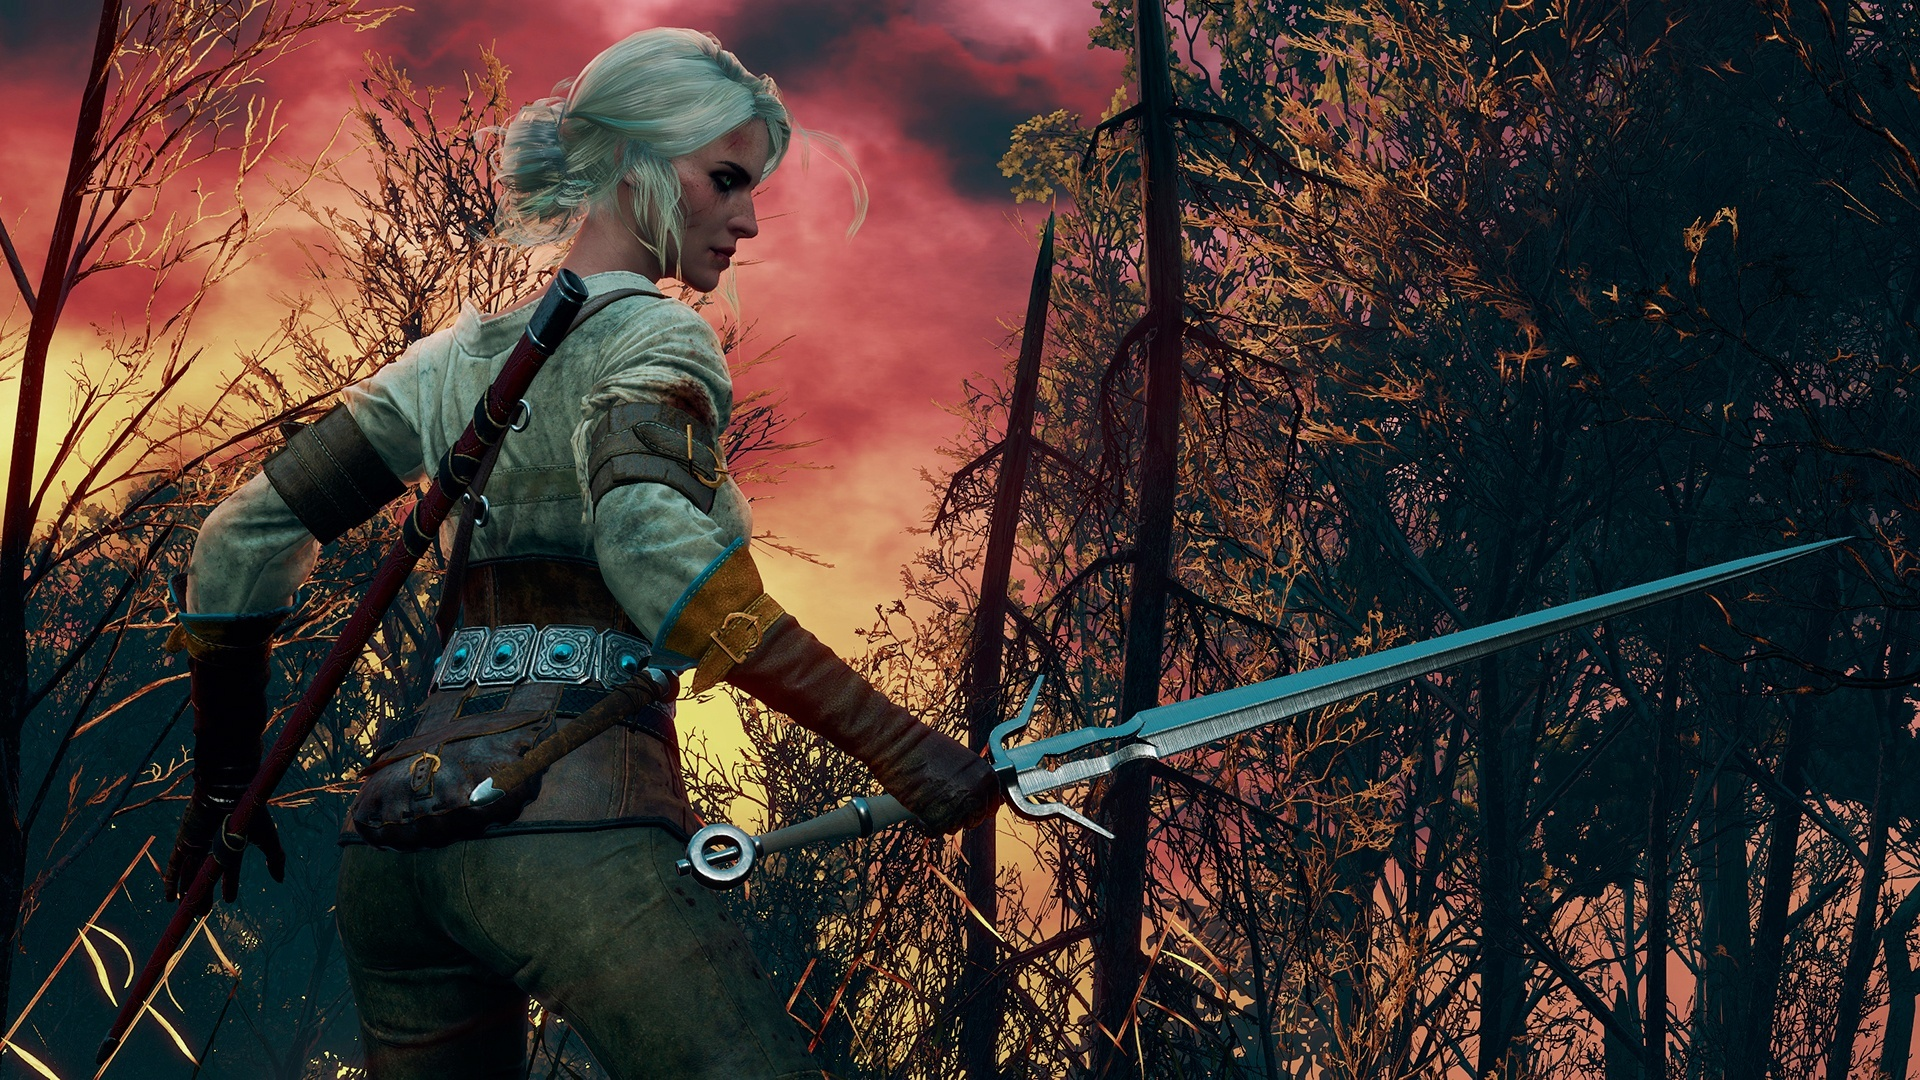 The Witcher 3 1080 X 2160 Wallpaper: Ciri The Witcher 3 Game Wallpapers